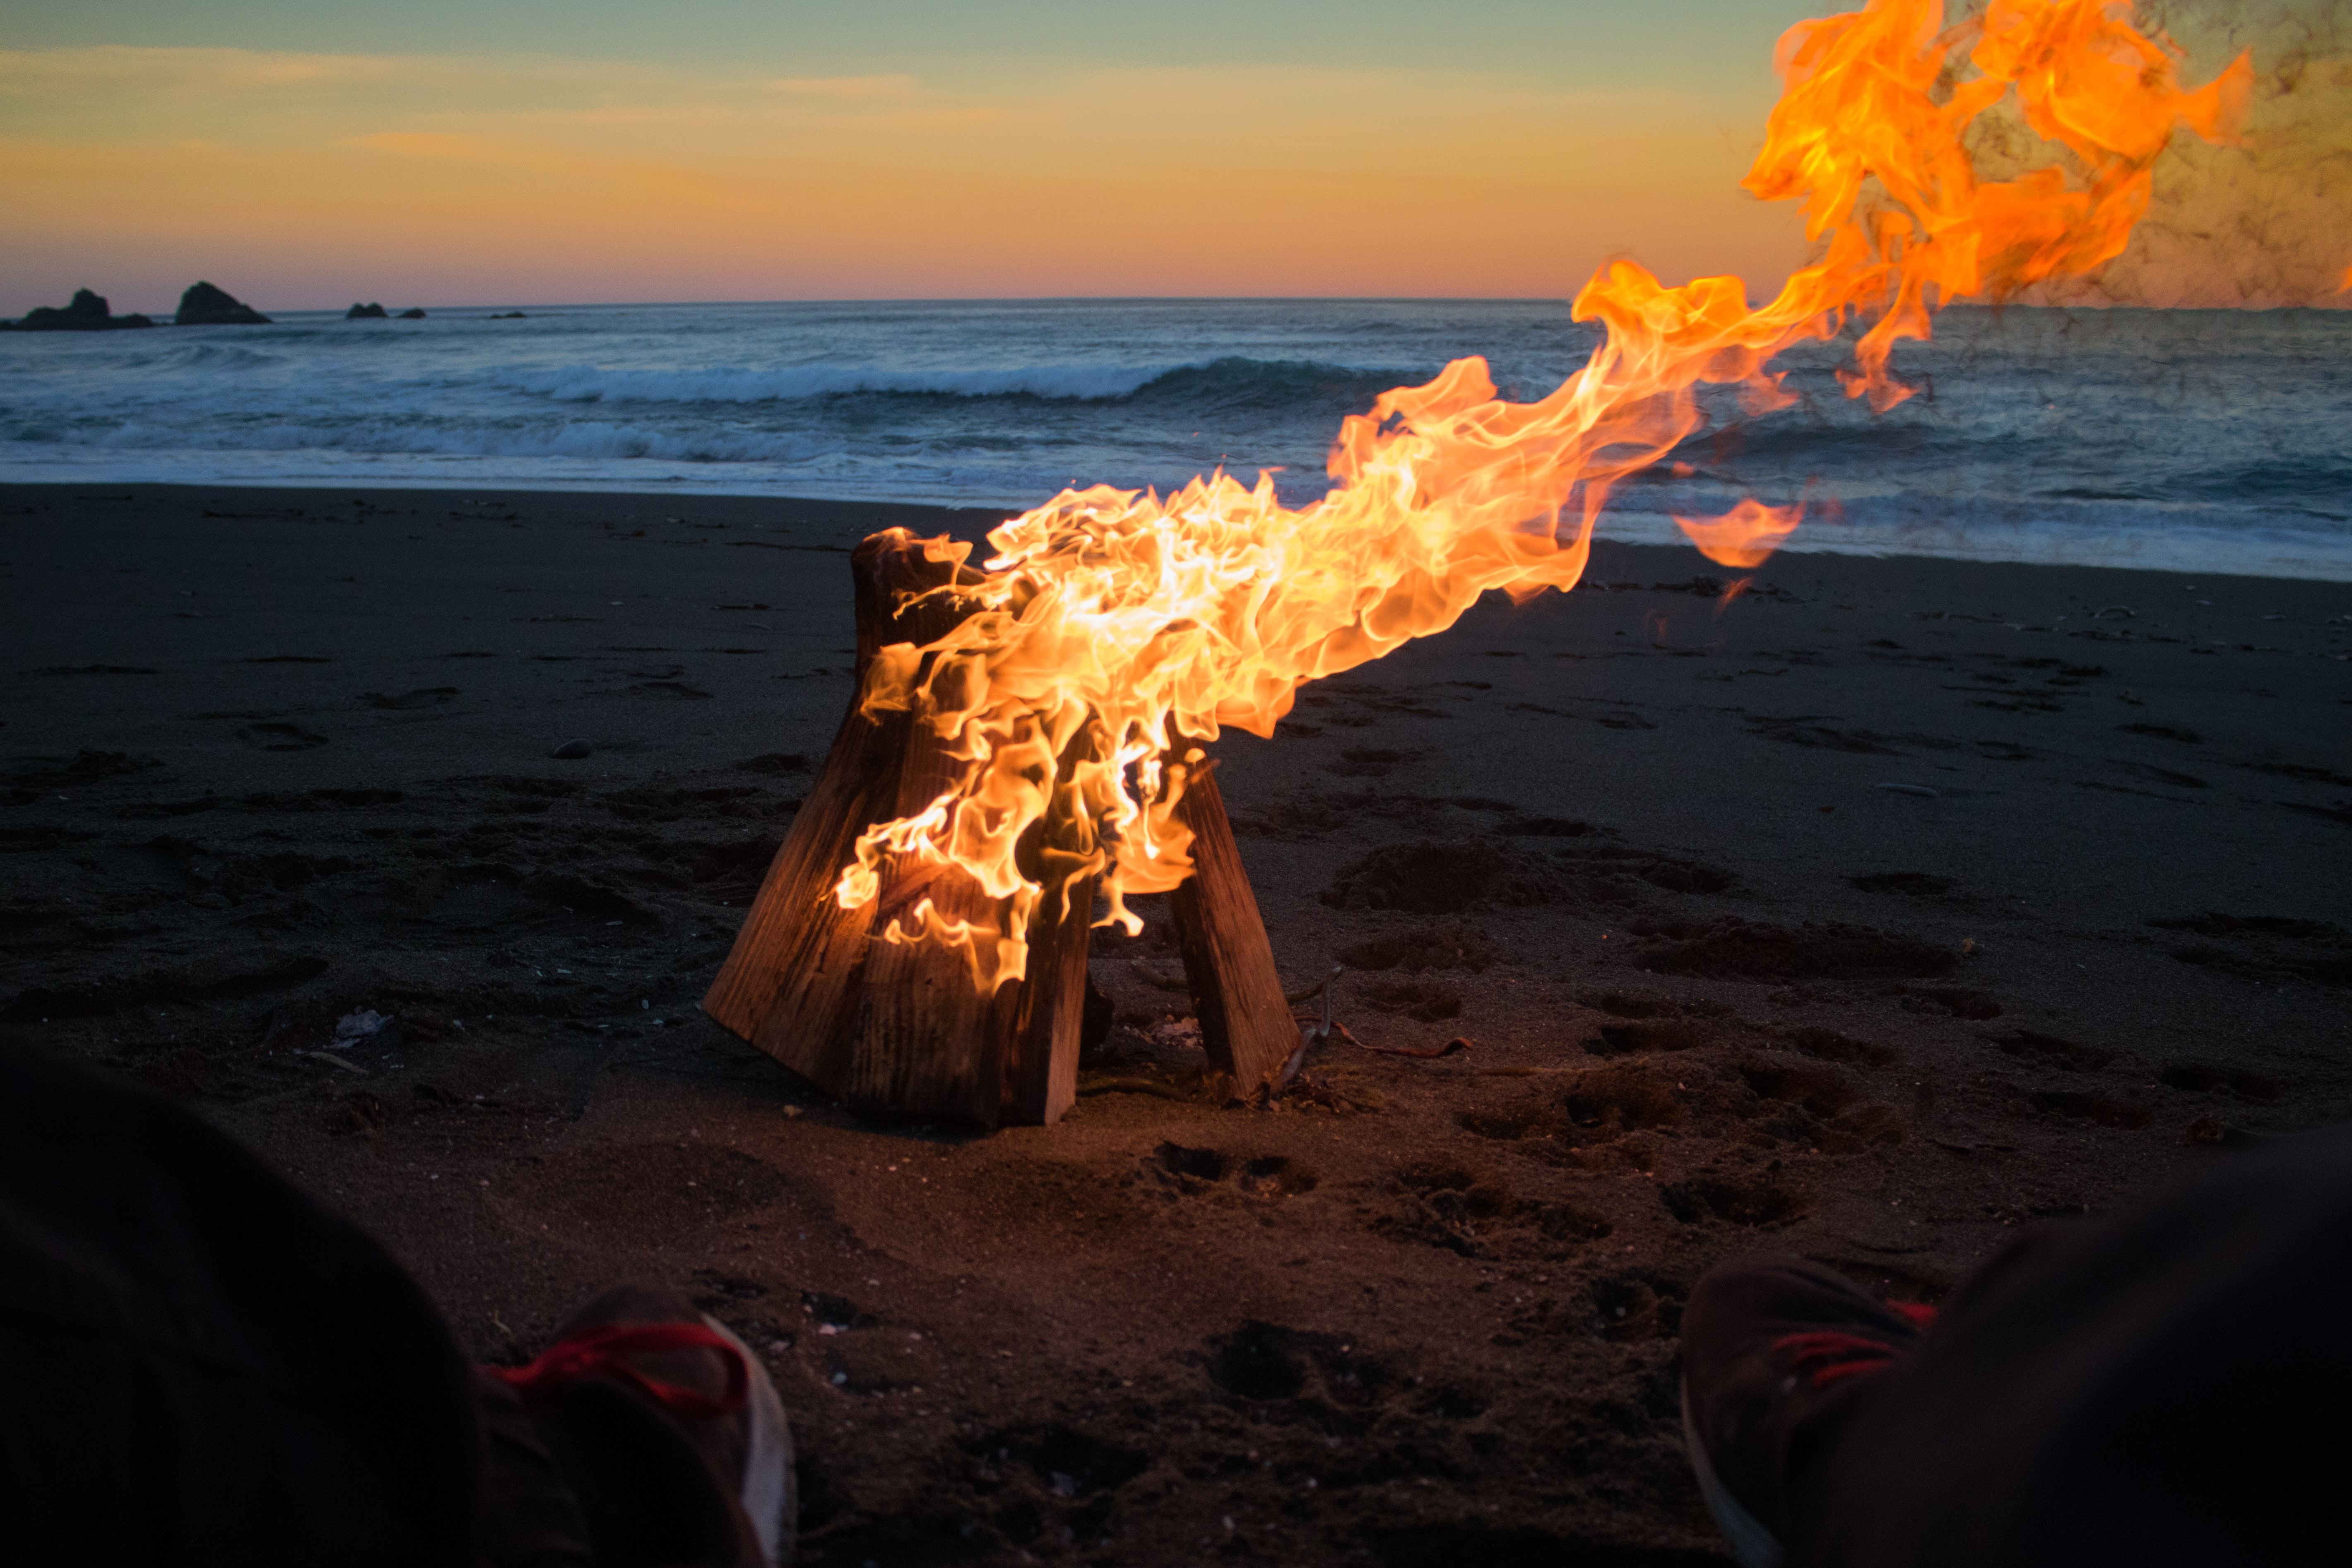 time lapse photo of bonfire on seashore during daytime